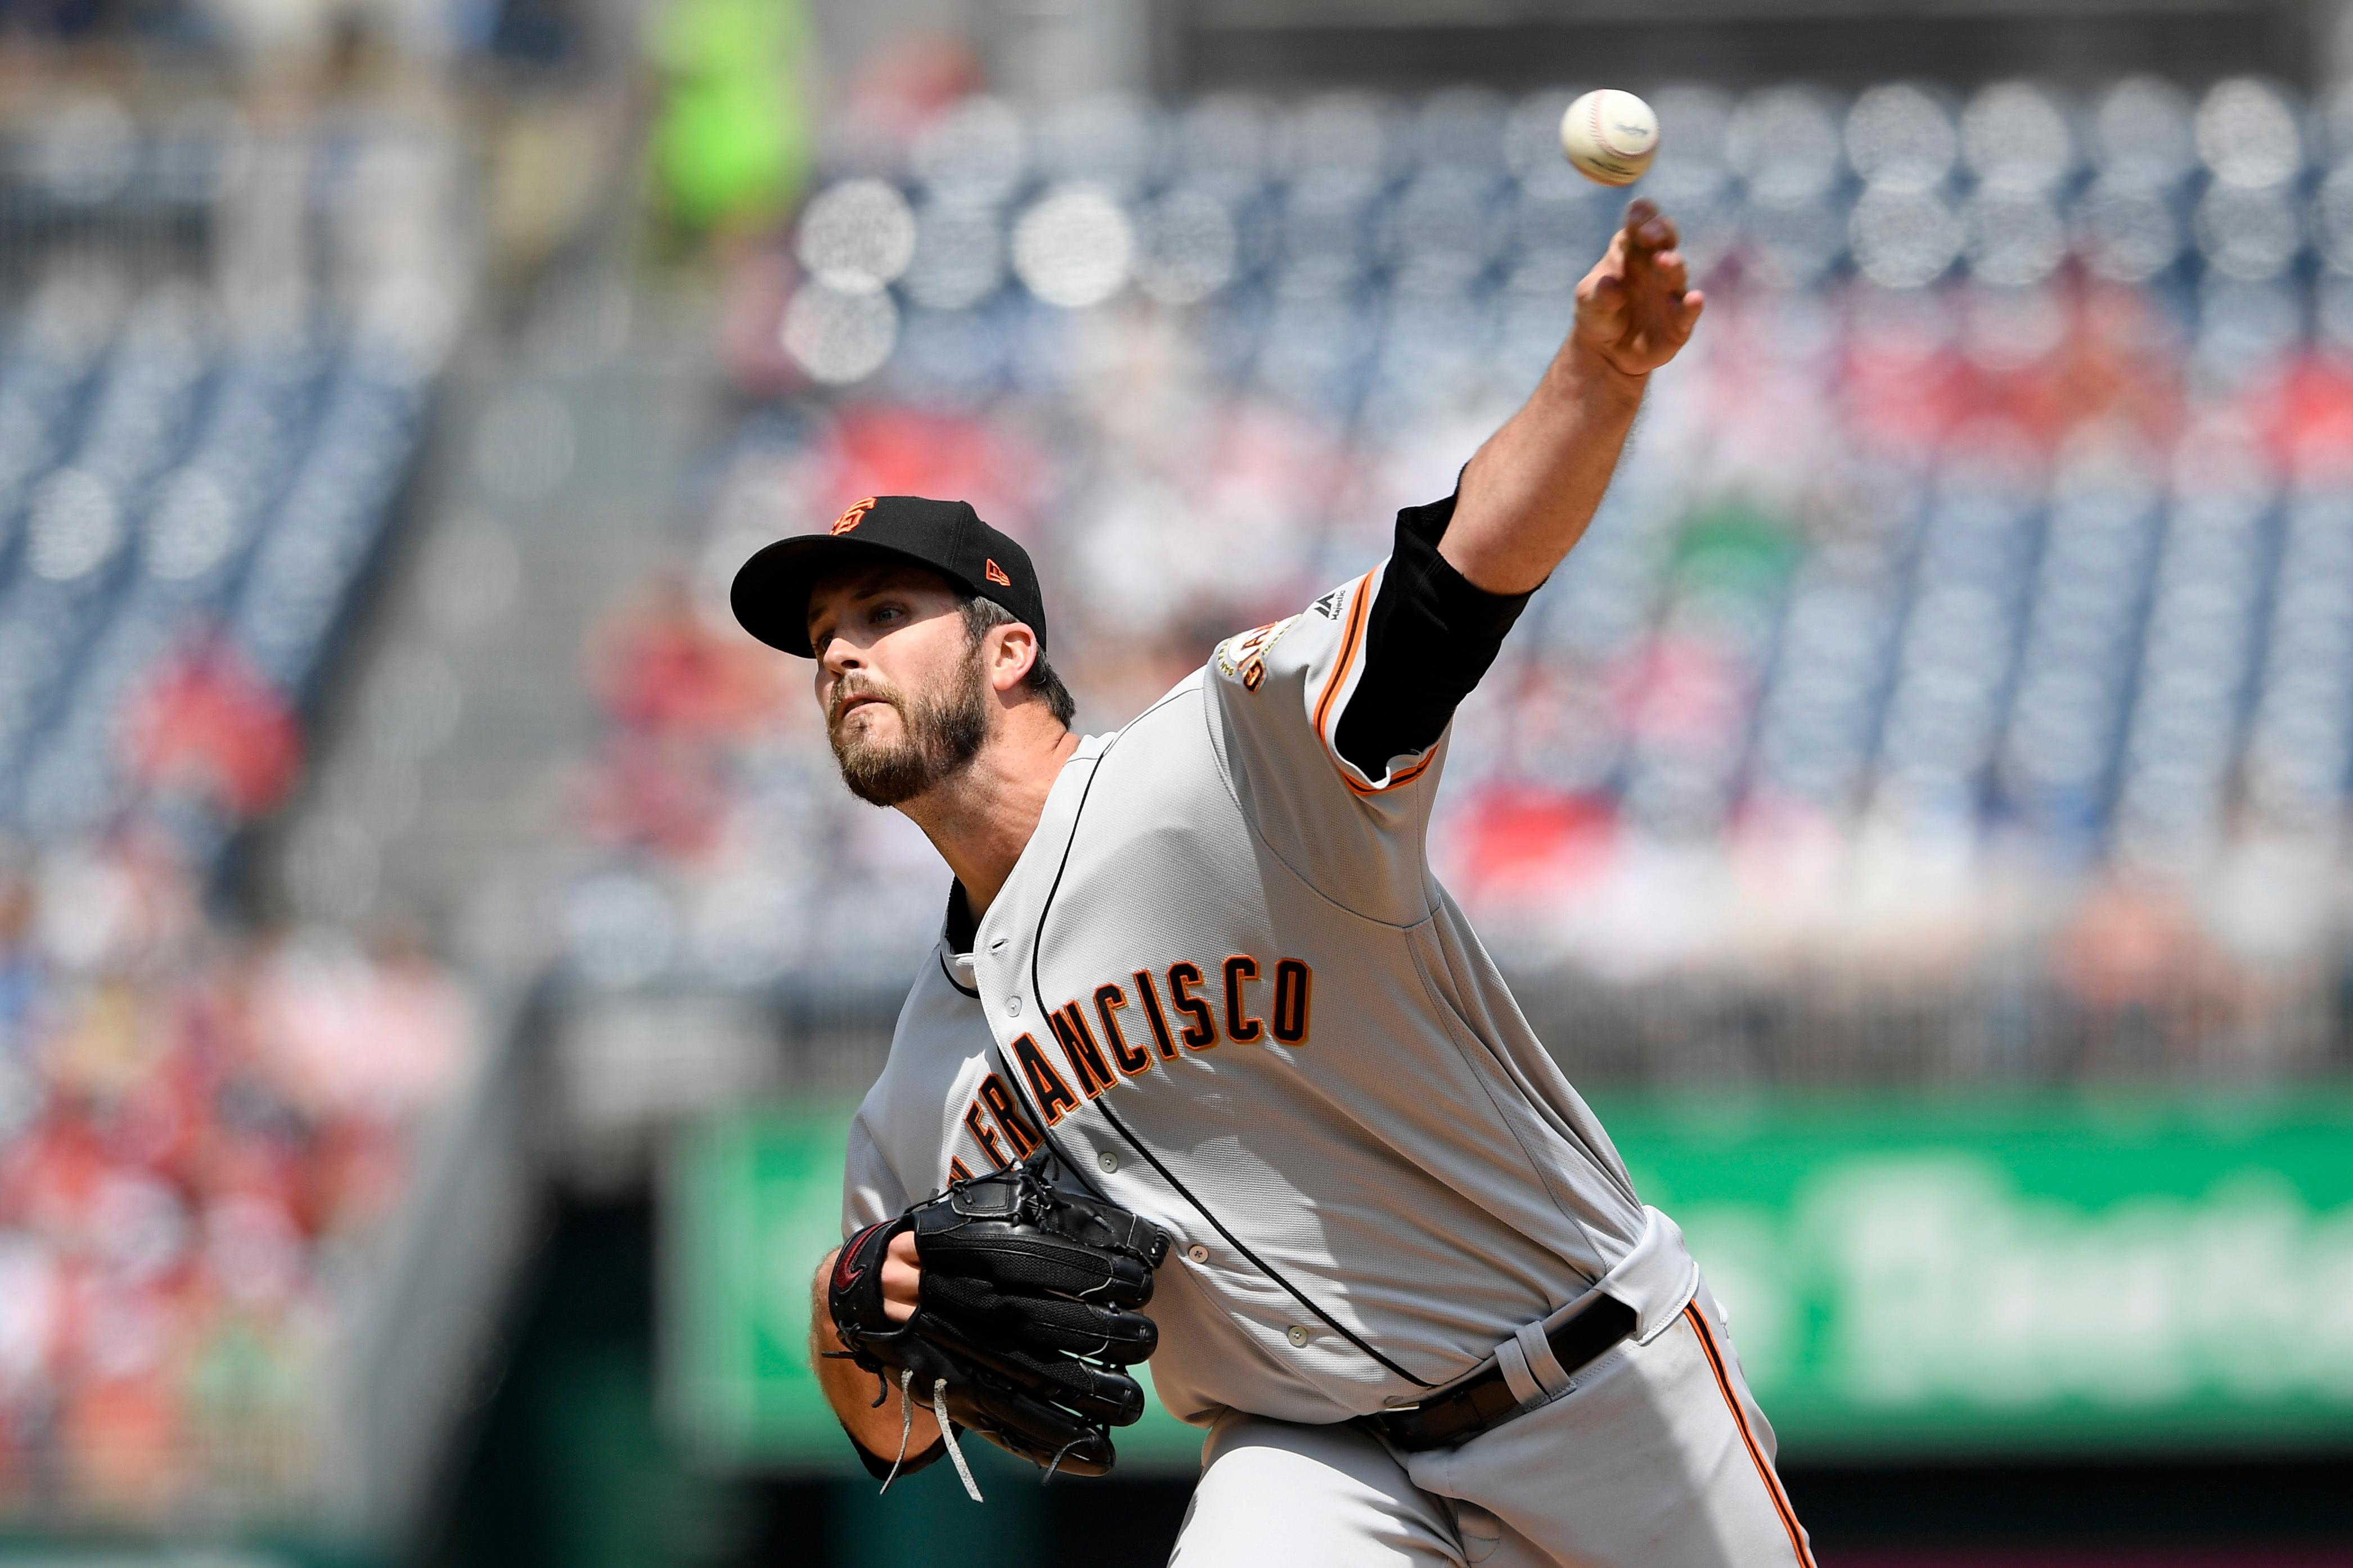 San Francisco Giants starting pitcher Drew Pomeranz delivers a pitch during the first inning of a baseball game against the Washington Nationals, Thursday, April 18, 2019, in Washington. (AP Photo/Nick Wass)